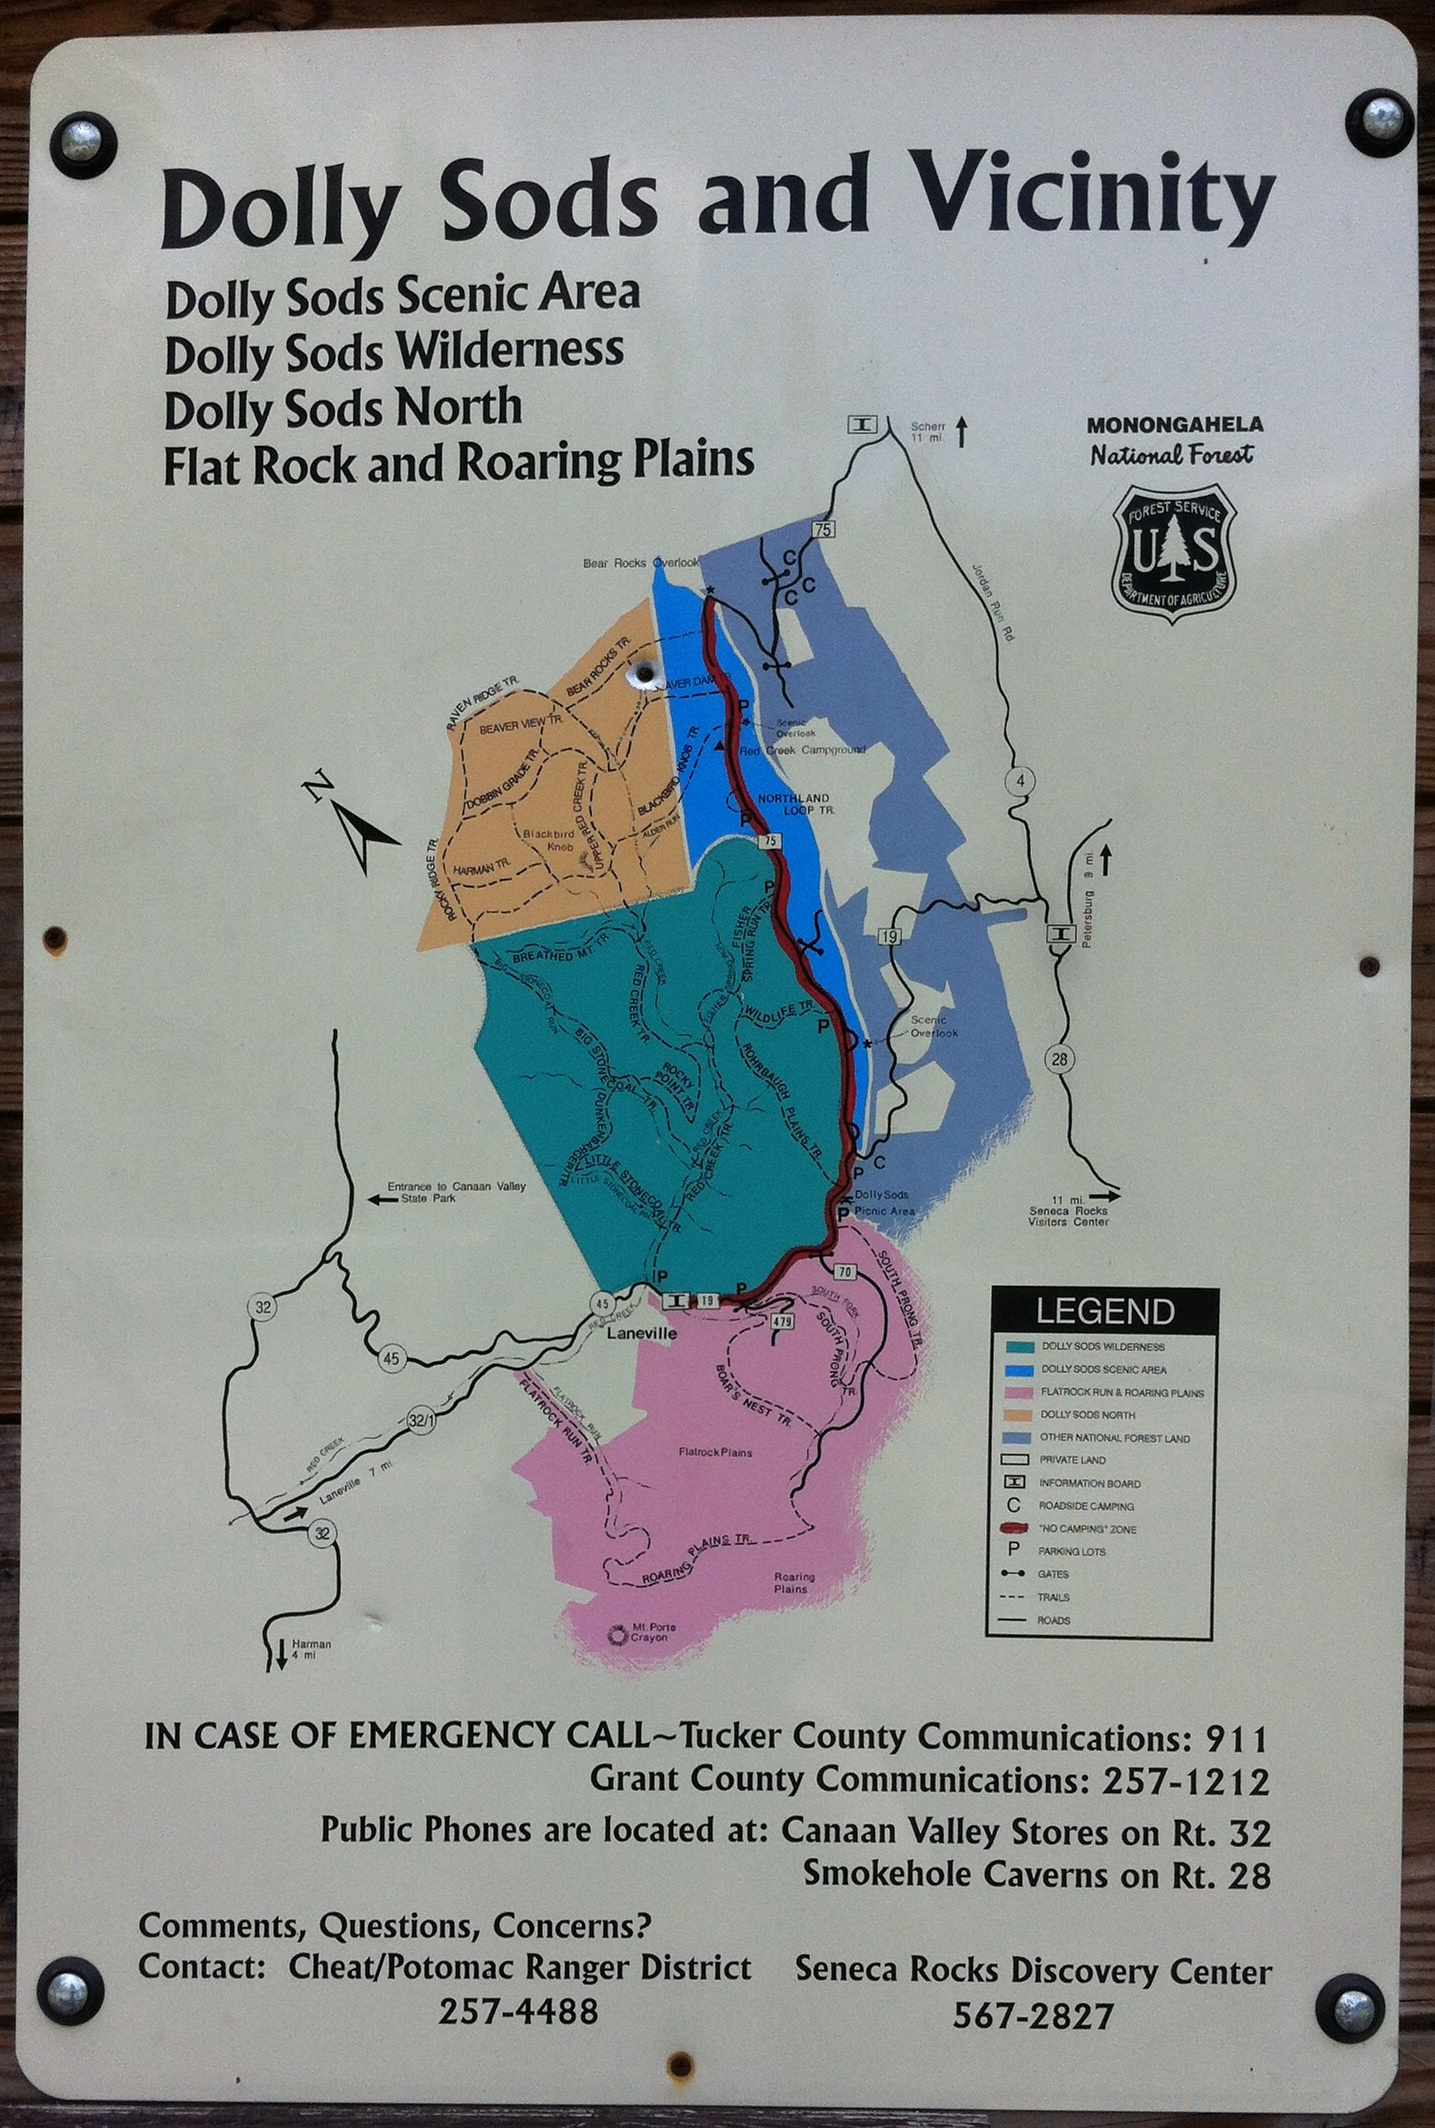 File:Dolly Sods map.JPG - Wikimedia Commons on otter creek wilderness area map, blackwater falls state park map, boston metro map, spruce knob, otter creek wilderness, laurel fork north wilderness, canaan valley national wildlife refuge, roaring plains west wilderness, smoke hole caverns, north fork mountain, bear rocks preserve, fairfax stone, oberg mountain trail map, smoke hole canyon, canaan valley state park map, elk river, wv state parks map, monongahela national forest, cranberry glades botanical area, cranberry glades map, elizabeth furnace map, nature map, taihu lake map, greater puget sound map, george washington national forest map, kumbrabow state forest, mammoth cave map, cathedral state park, superstition wilderness map, spruce knob map, new river gorge map, greater brisbane map, gauley river, seneca rocks, canaan valley resort state park, cranberry wilderness, canaan valley, shenandoah national park map, the plains va map, wulingyuan map,